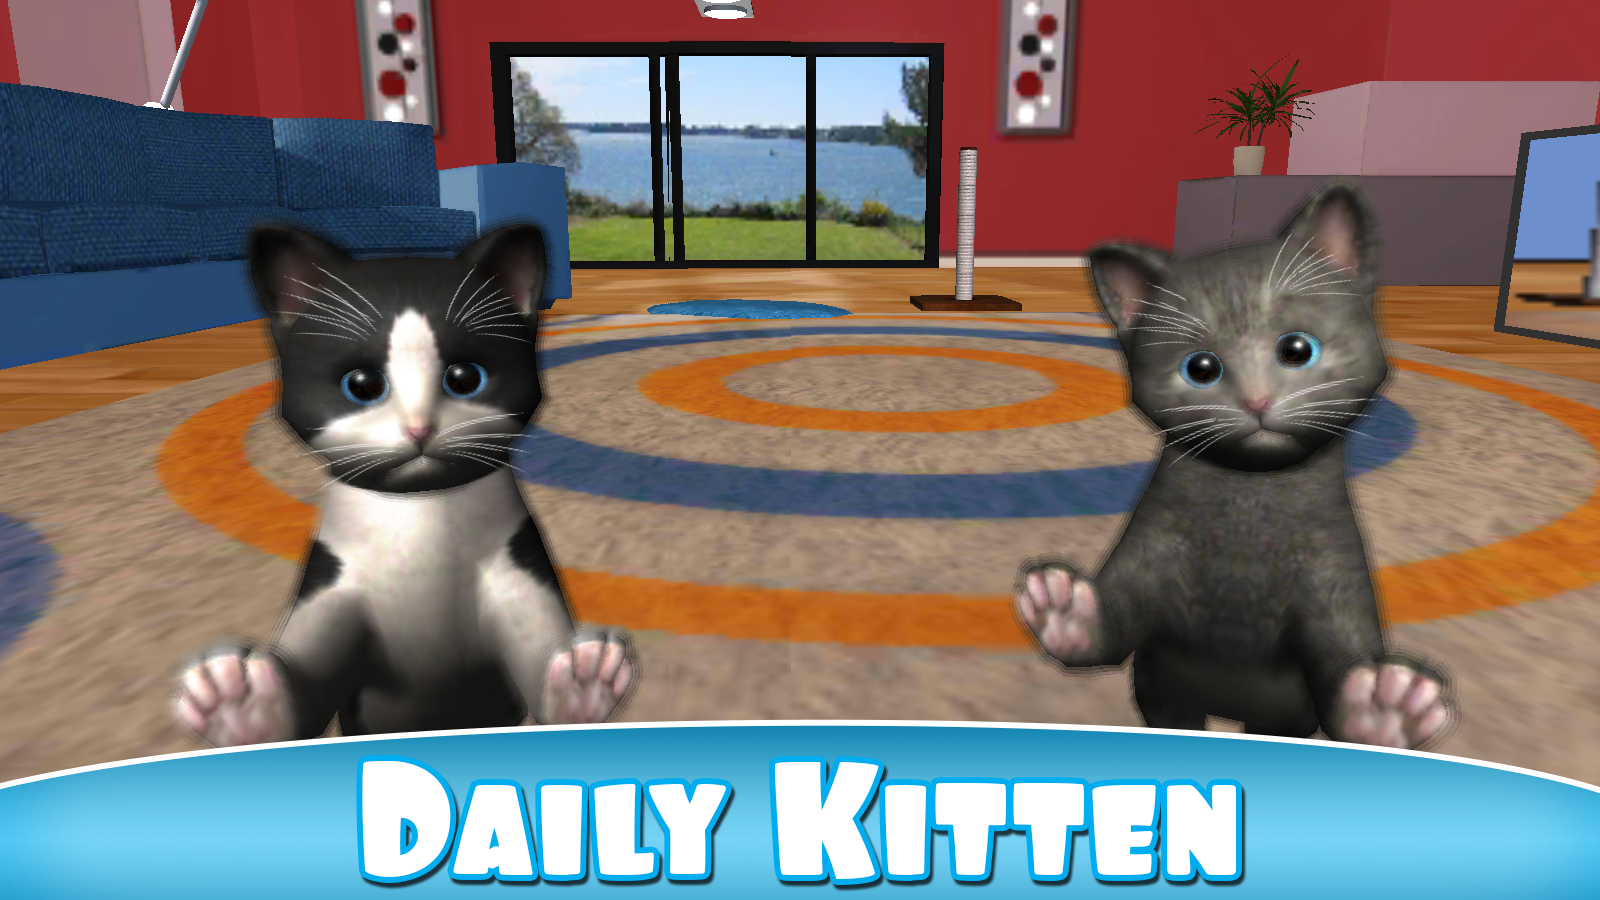 Daily Kitten : virtual cat pet Screenshot 17